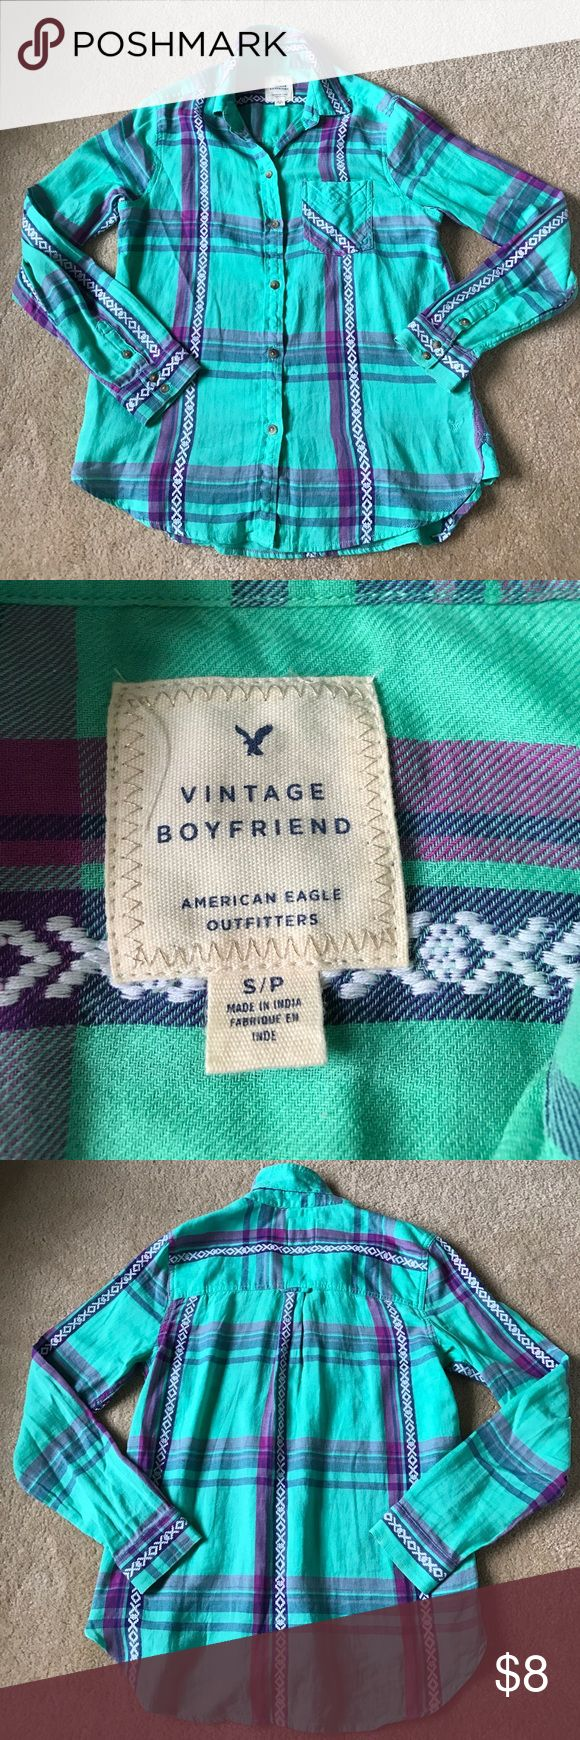 American Eagle Button Down Size S Adorable green and purple Button Down top by American Eagle Outfitters. Boyfriend cut which means it fits a bit looser. 💯 % Cotton. EUC. Comes from pet free/smoke free home American Eagle Outfitters Tops Button Down Shirts